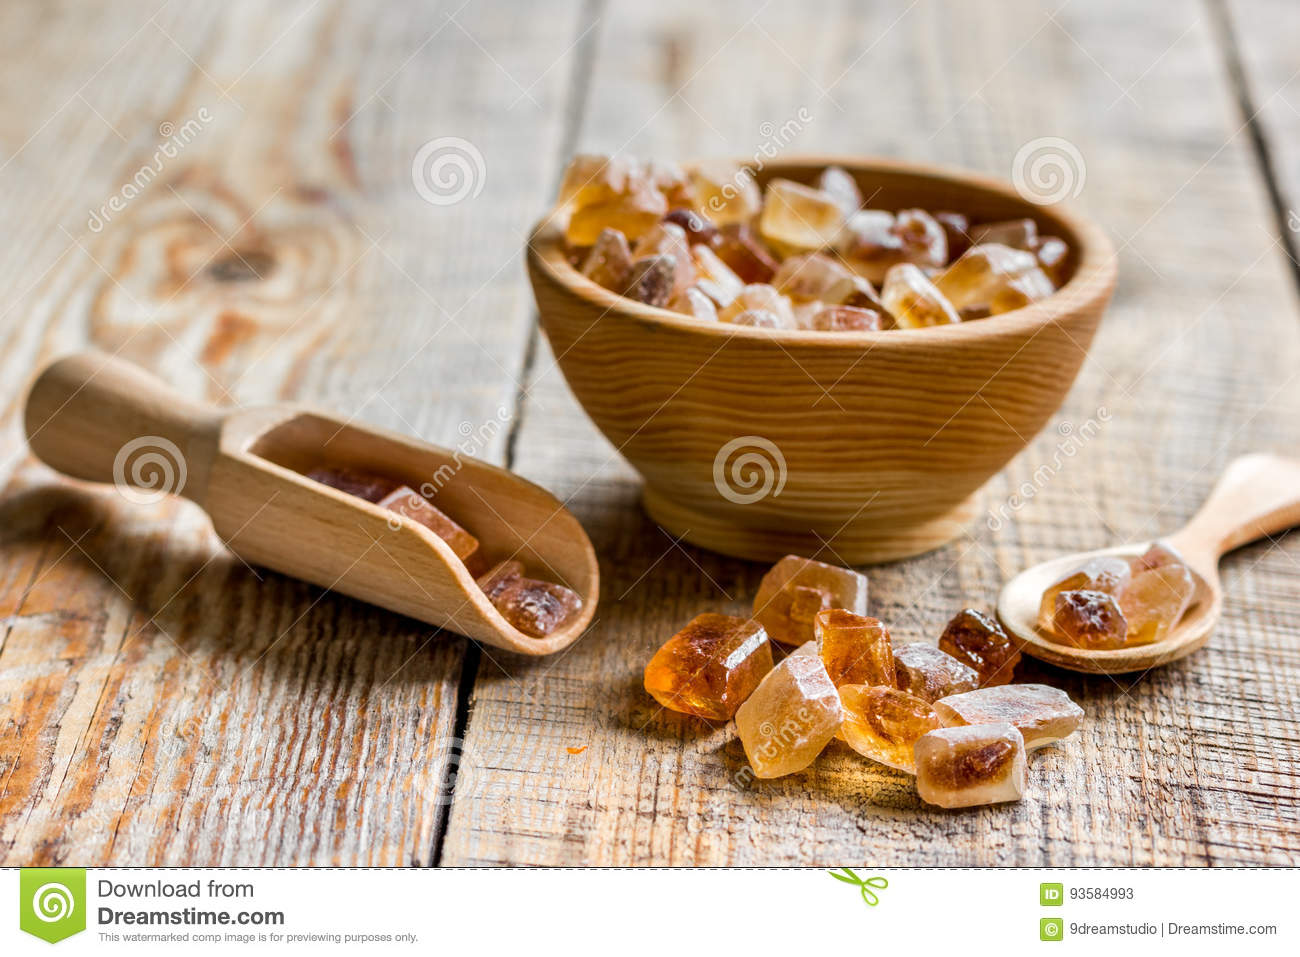 cooking sweets set with different sugar lumps on rustic table background close up